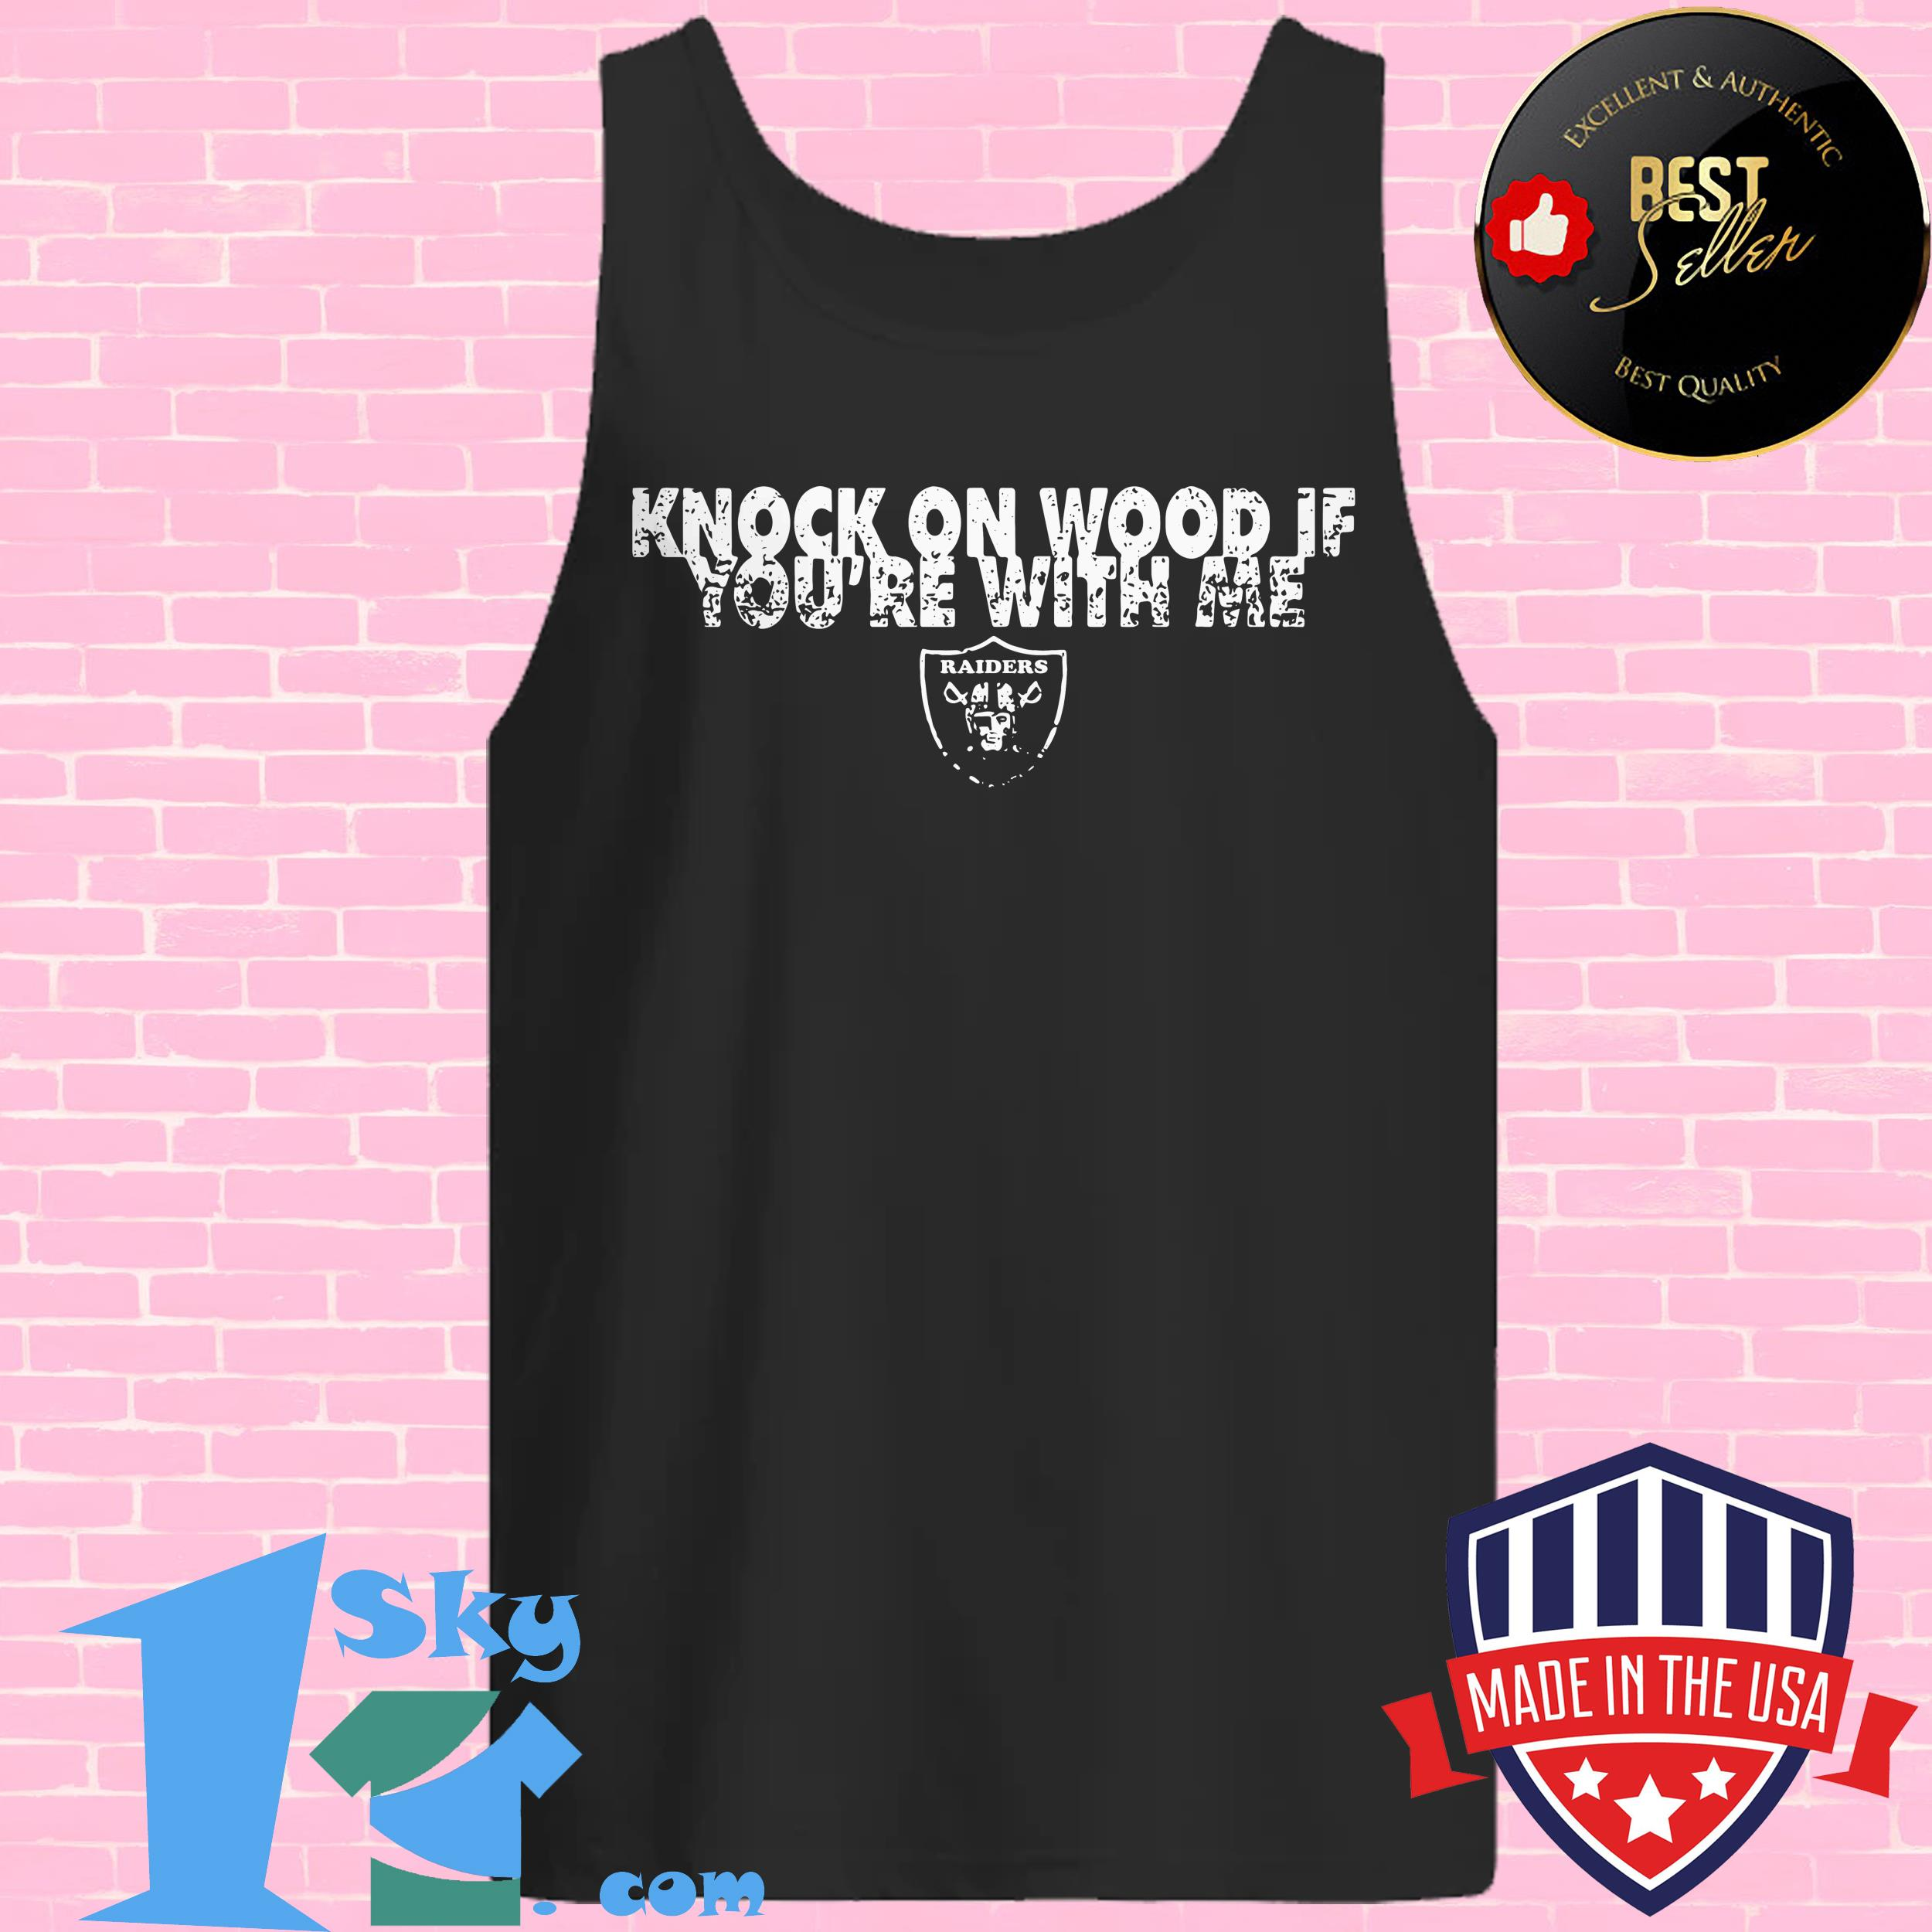 knock on wood if youre with me oakland raiders tank top - Knock on wood if you're with me Oakland Raiders shirt